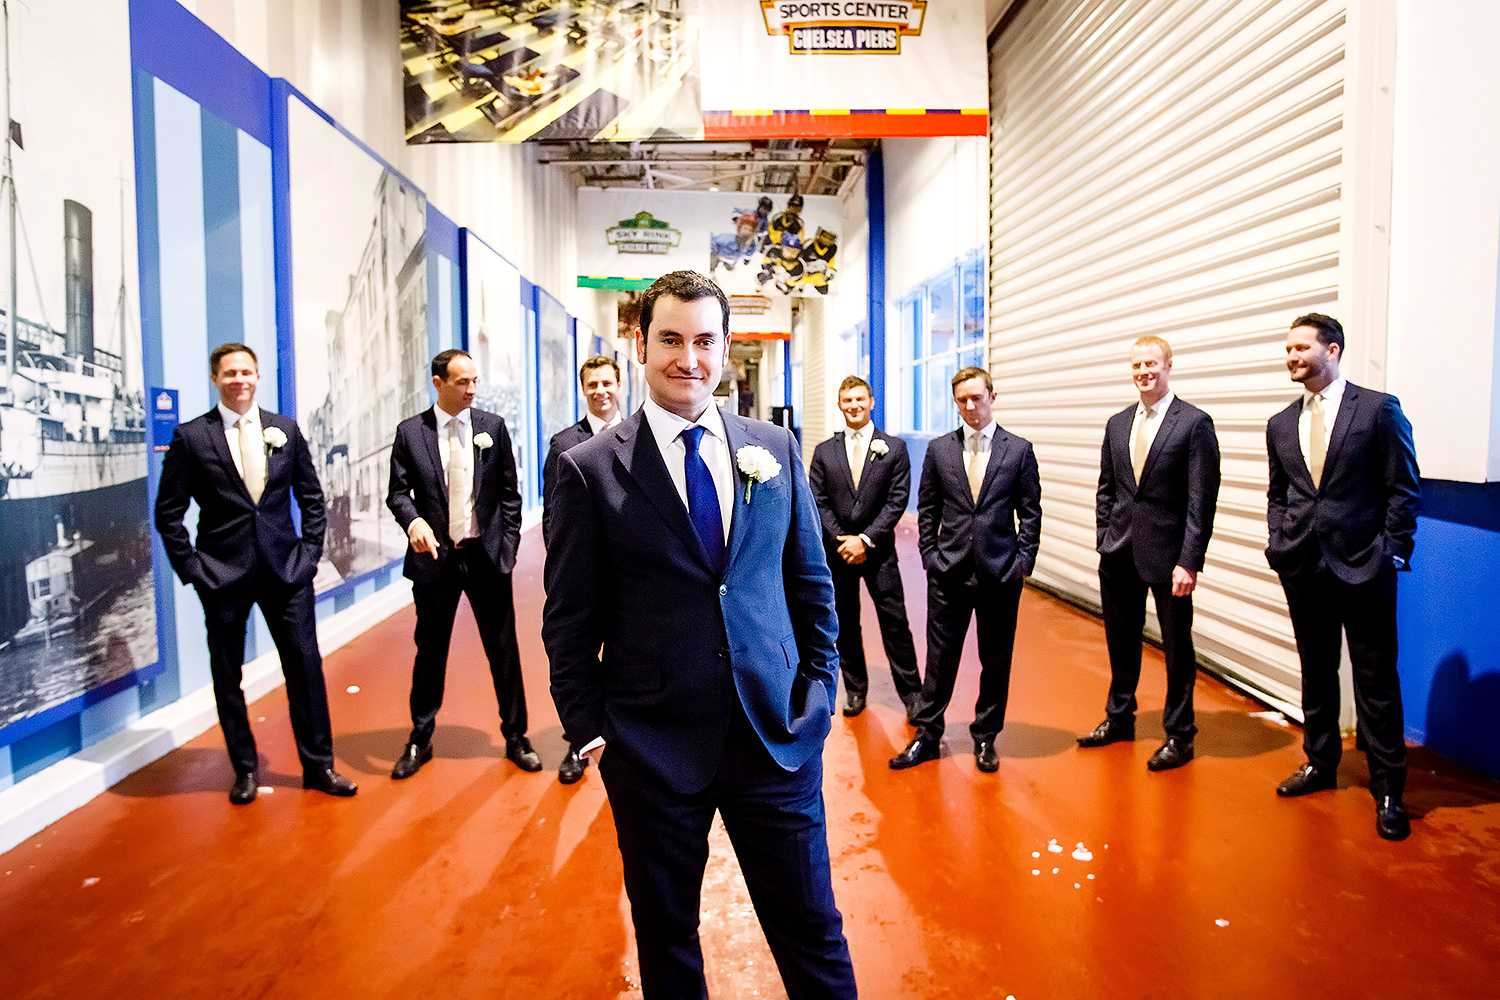 Casey and his groomsmen at Chelsea Piers